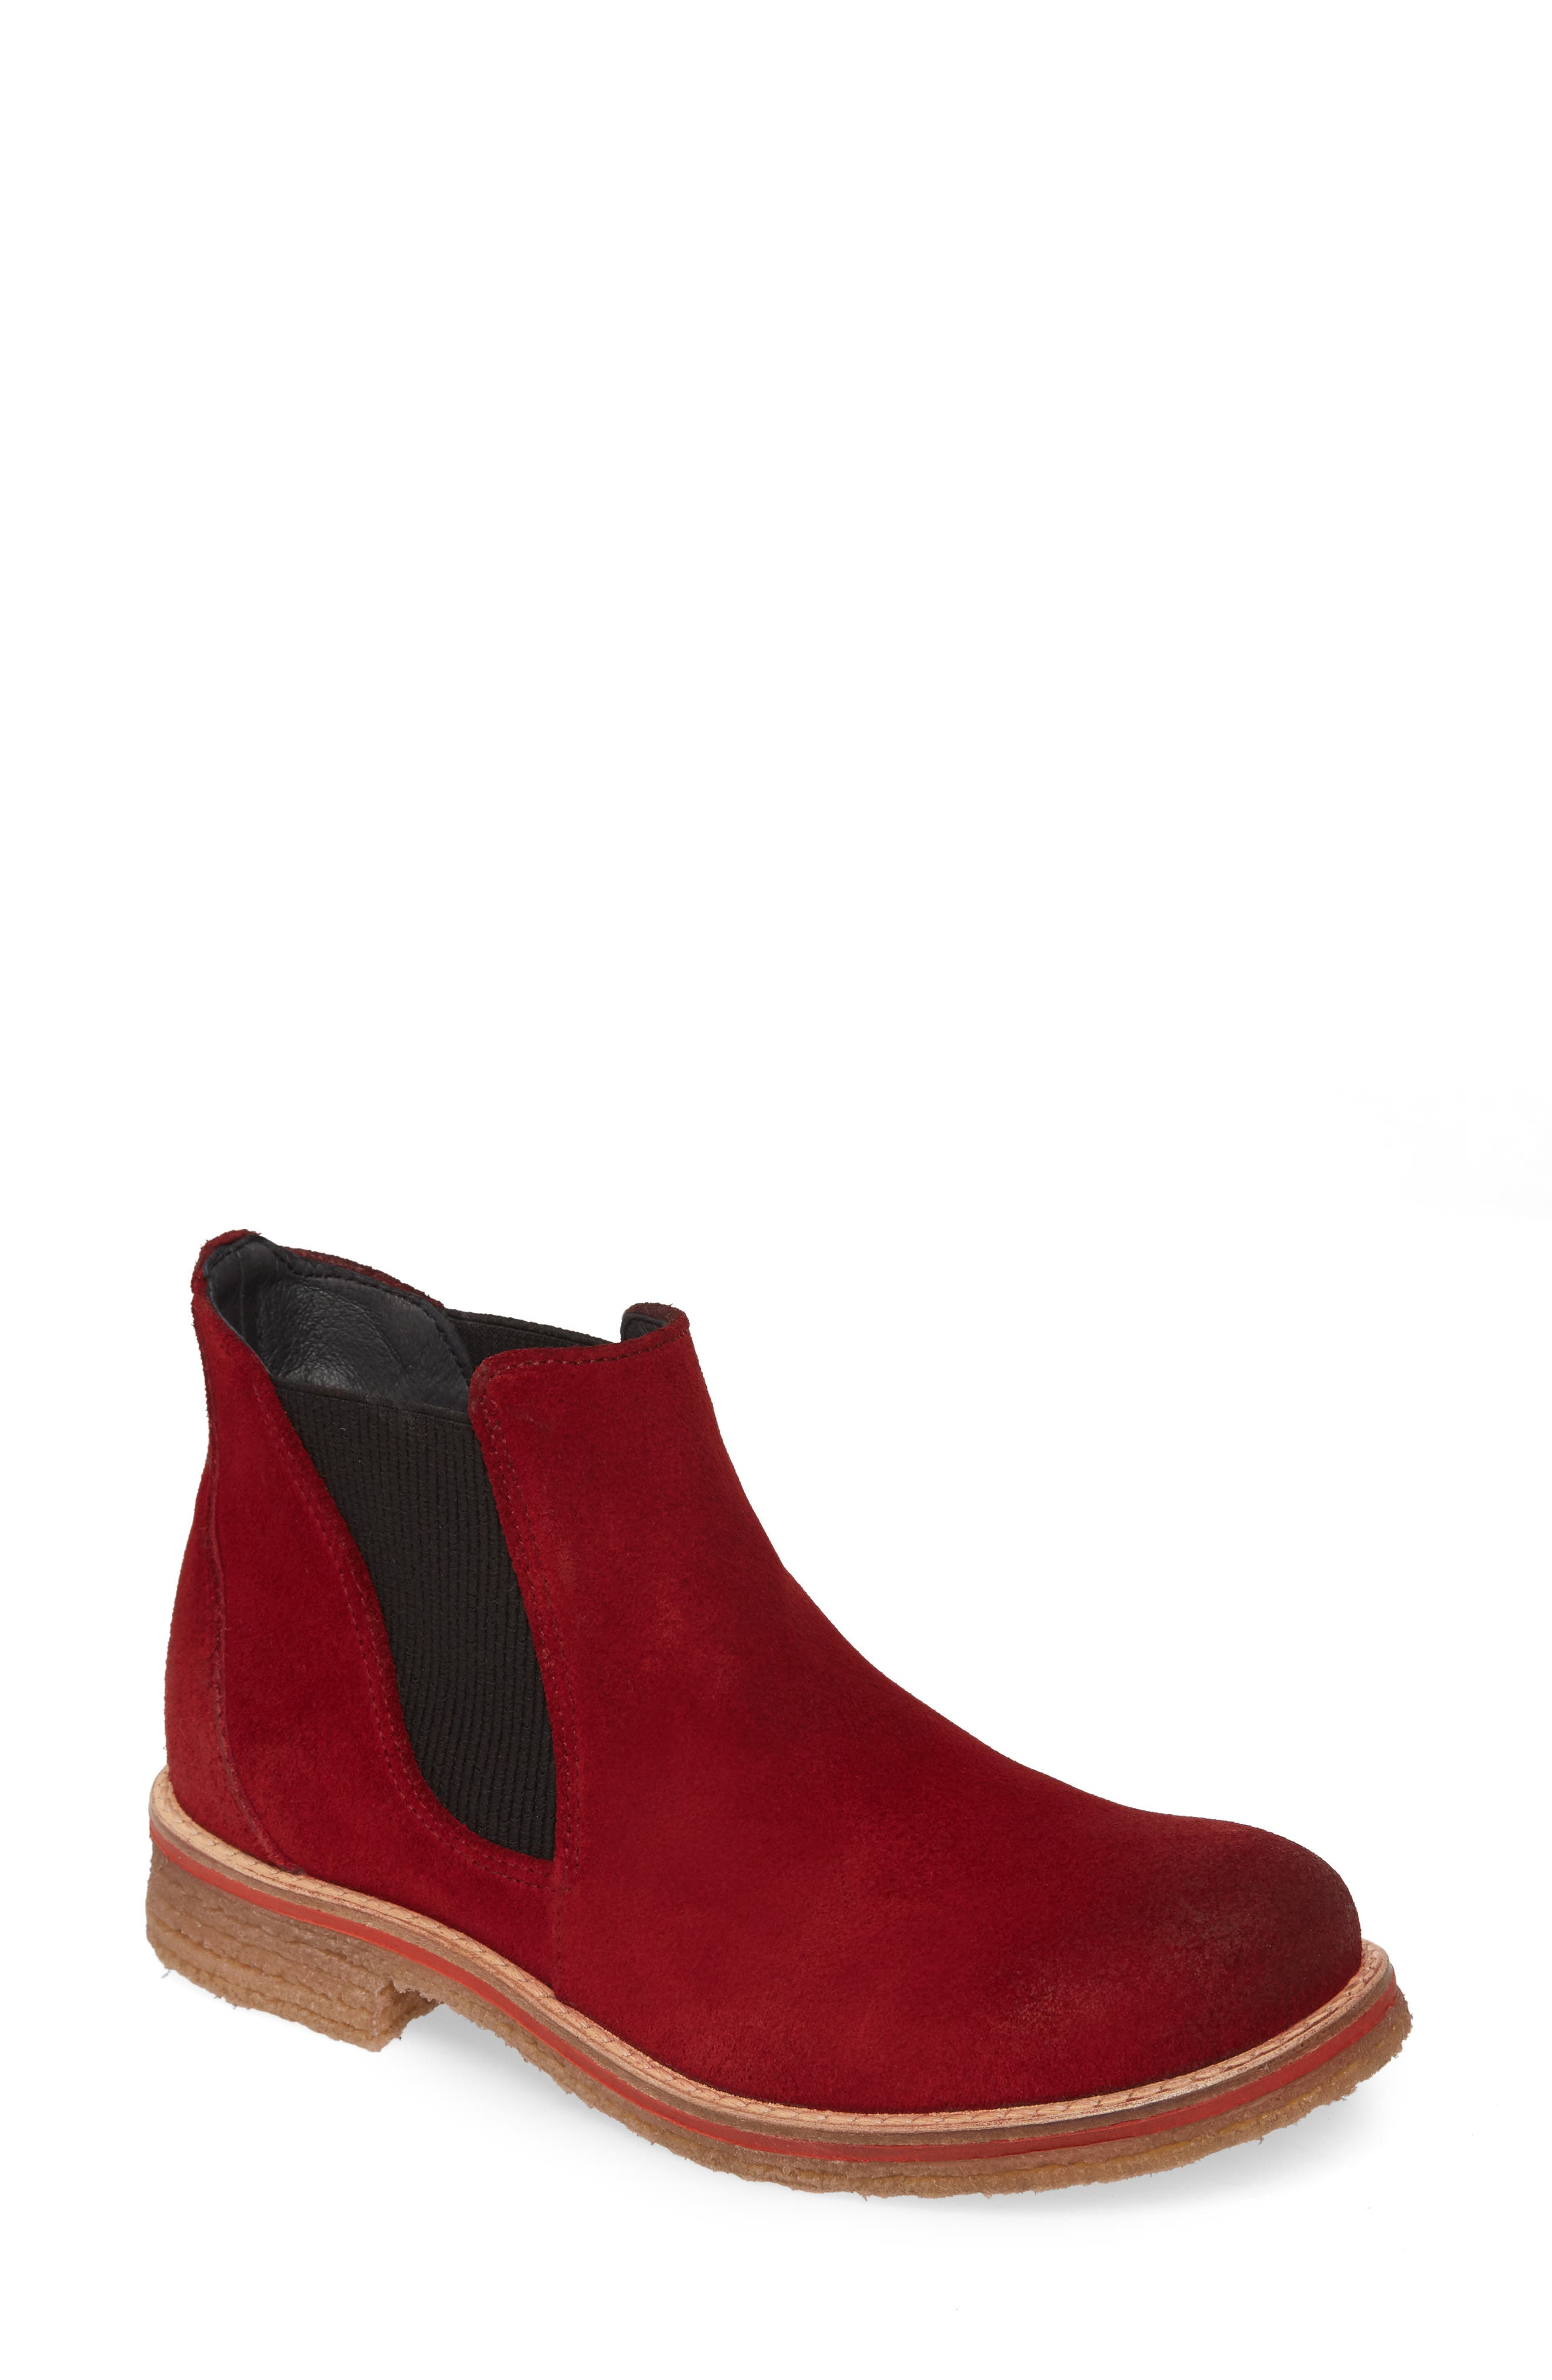 Bos. & Co. Brave Waterproof Chelsea Boot, Red